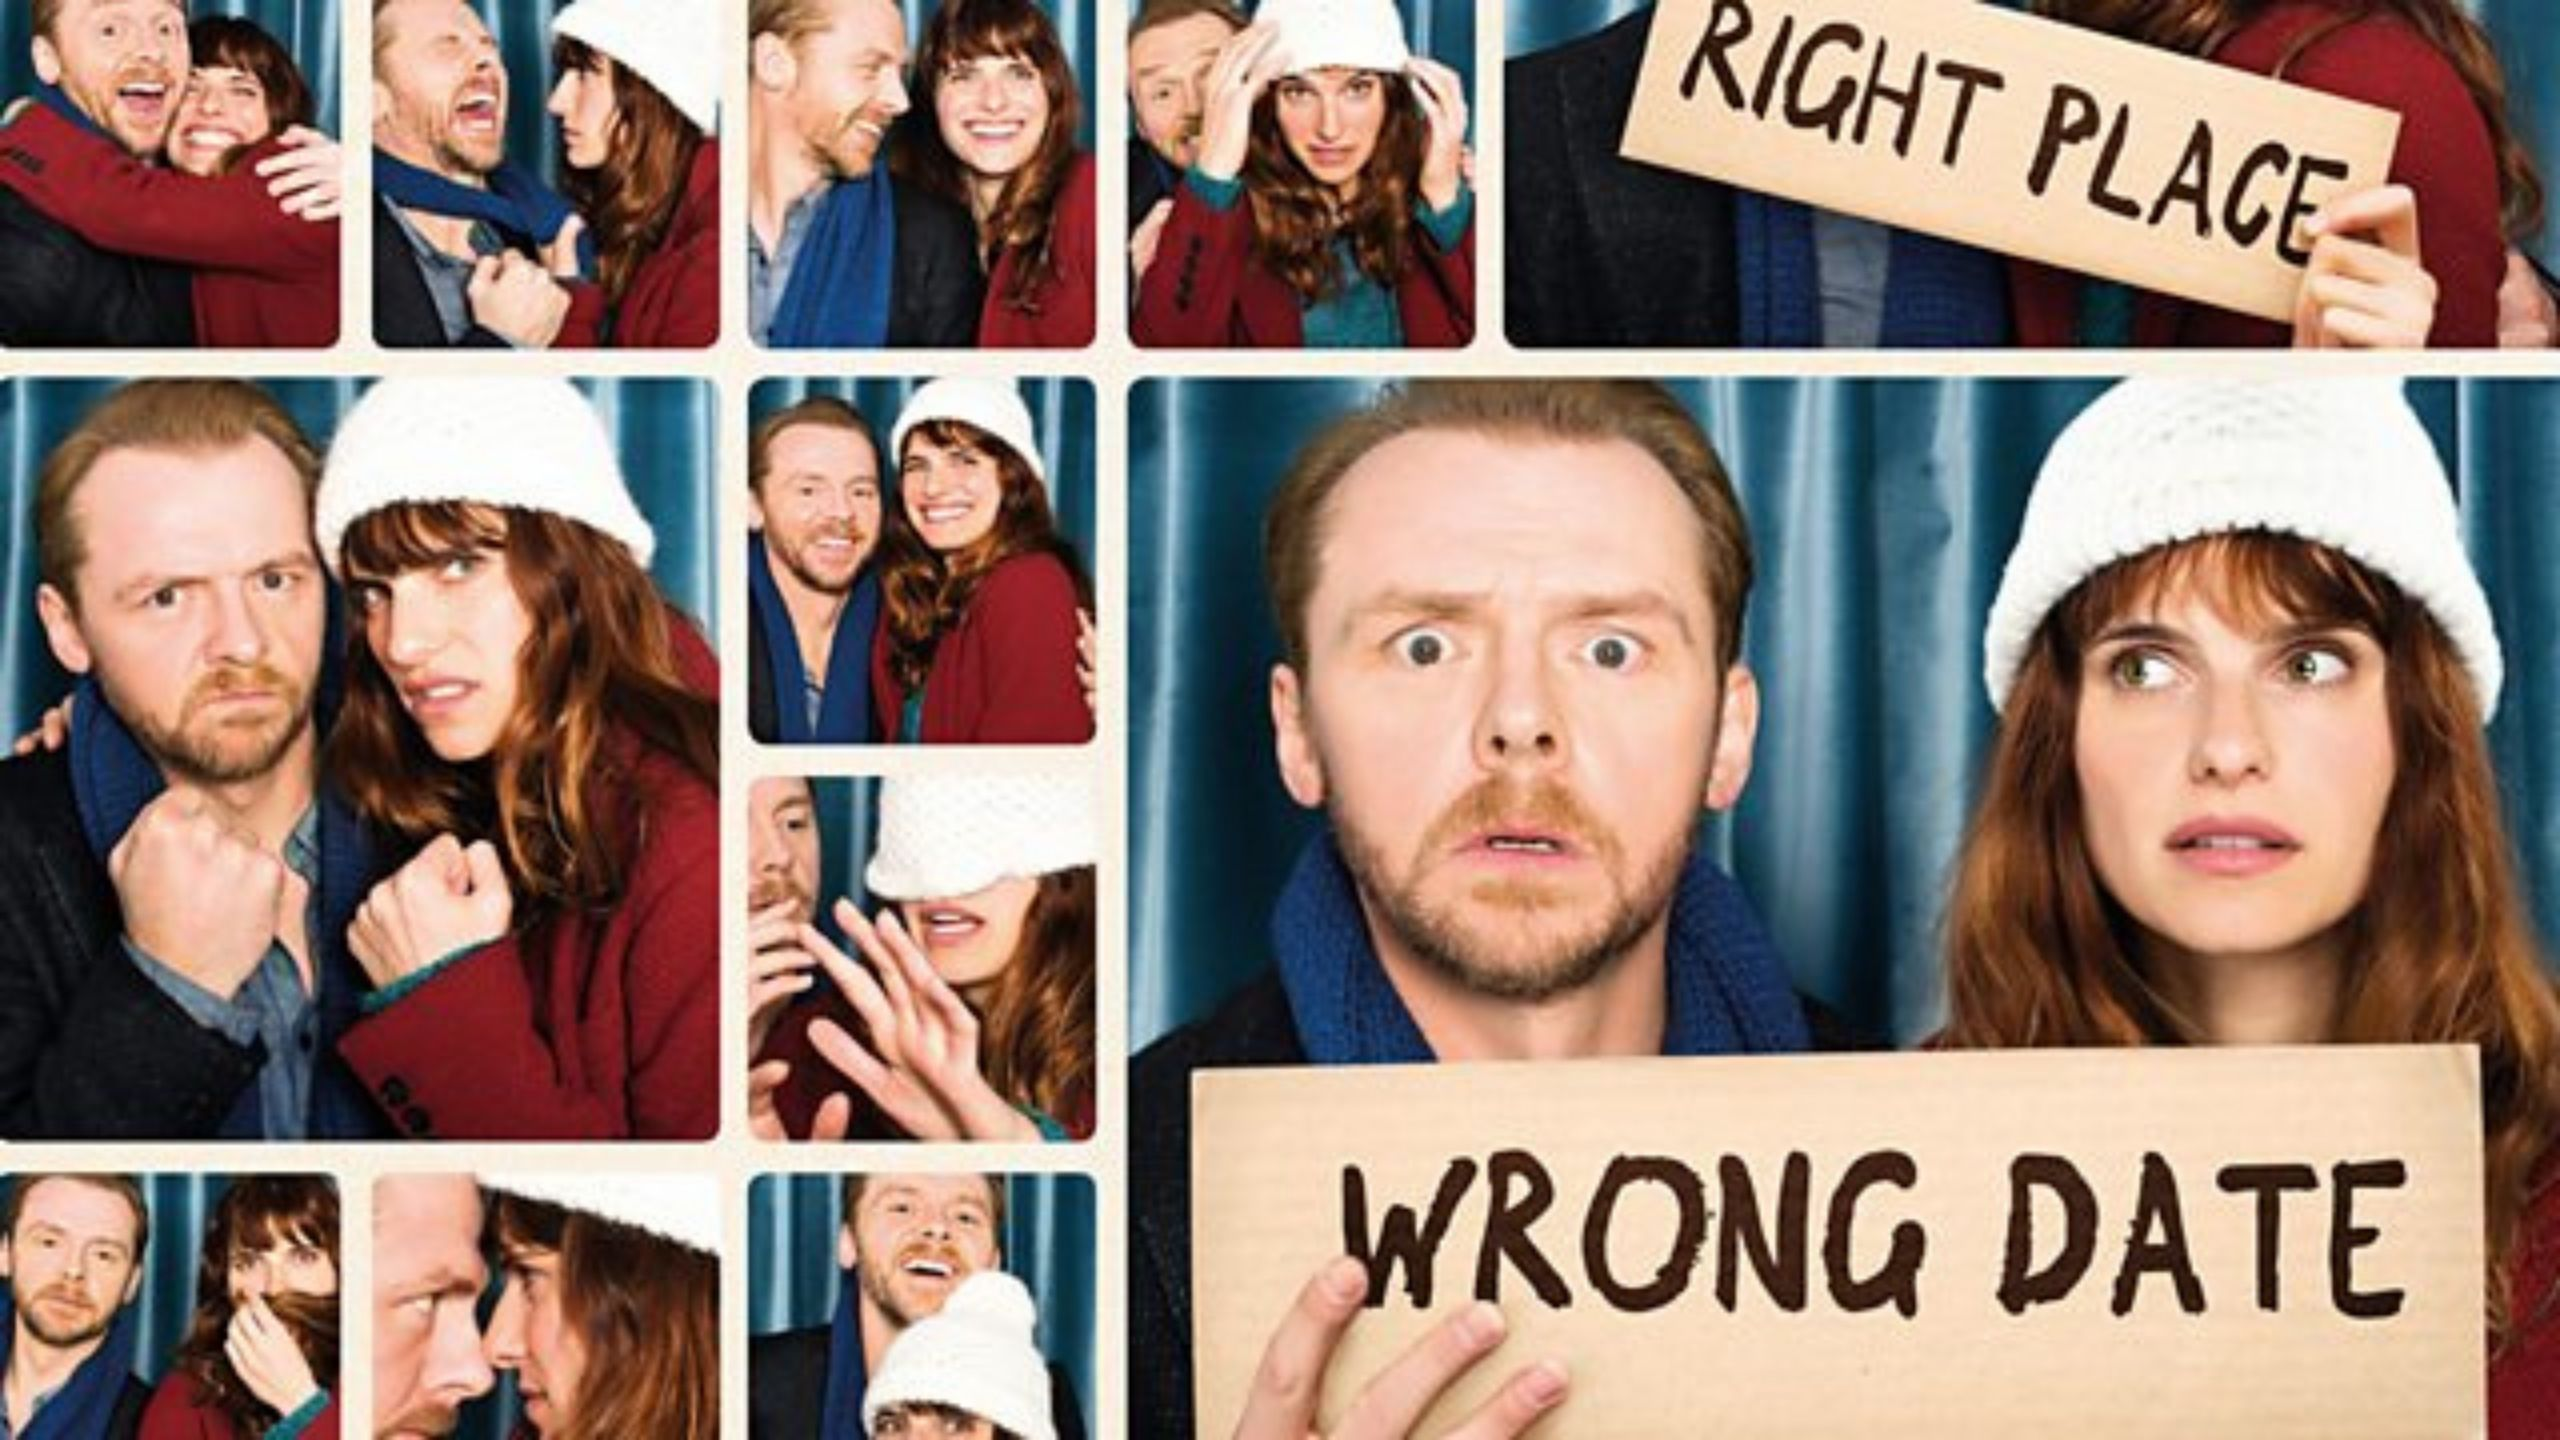 Montage of images of a couple in a photo booth holding signs that say 'Wrong Date' and 'Right Place'